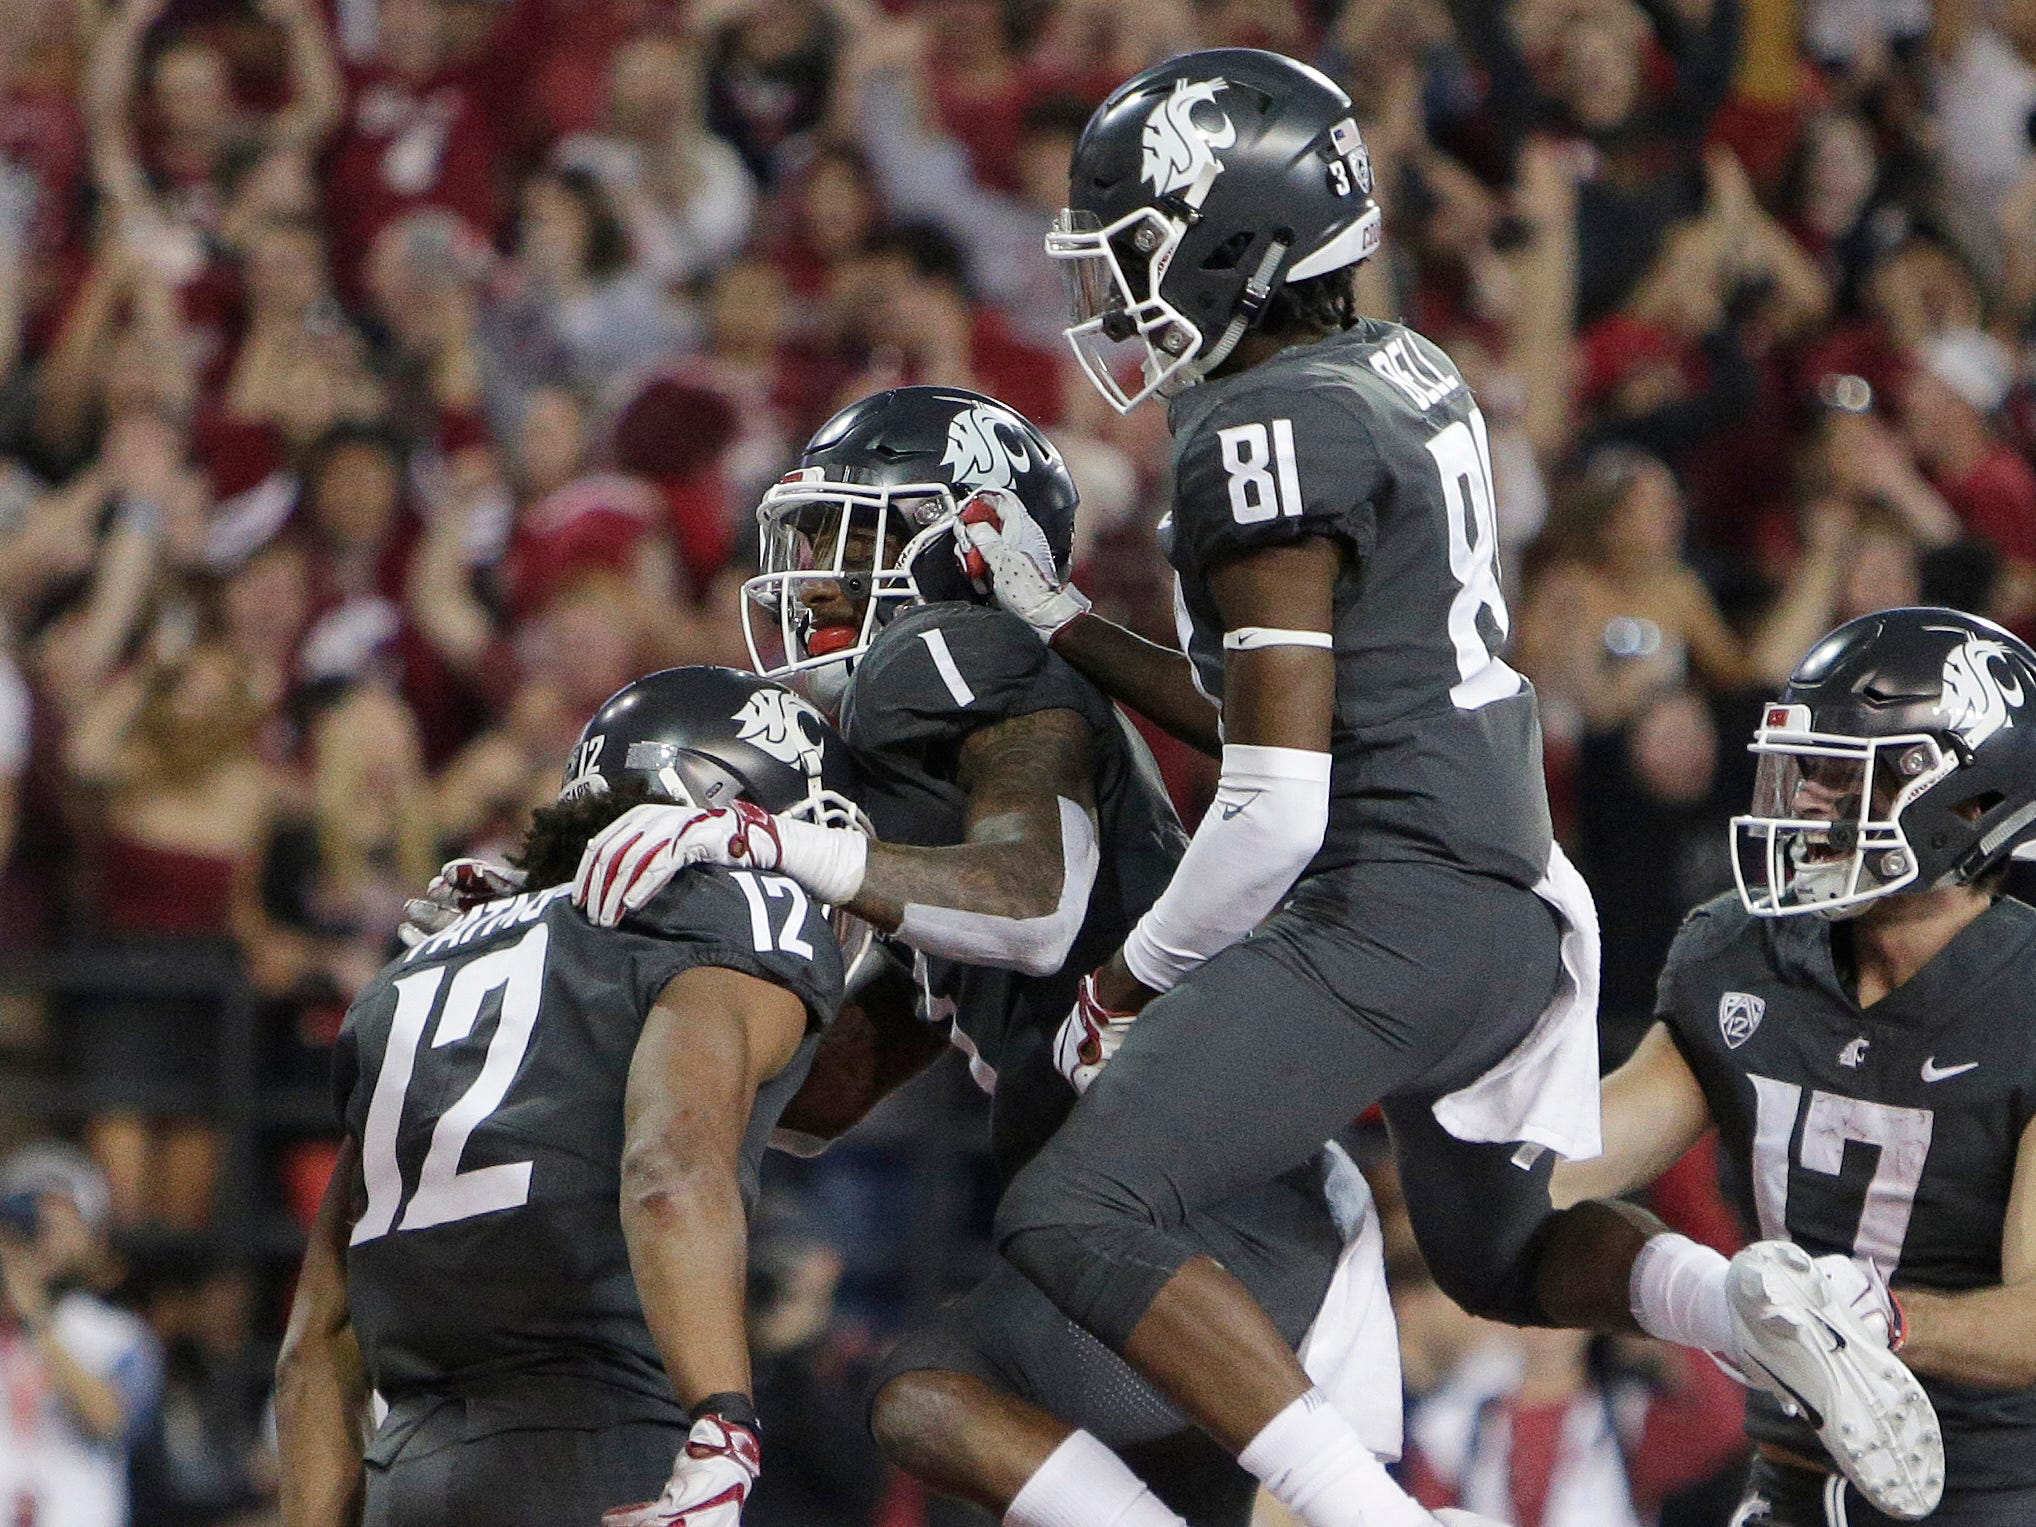 Washington State wide receiver Dezmon Patmon (12) celebrates his touchdown catch with wide receiver Davontavean Martin (1) and wide receiver Renard Bell (81) during Saturday's win over Oregon.